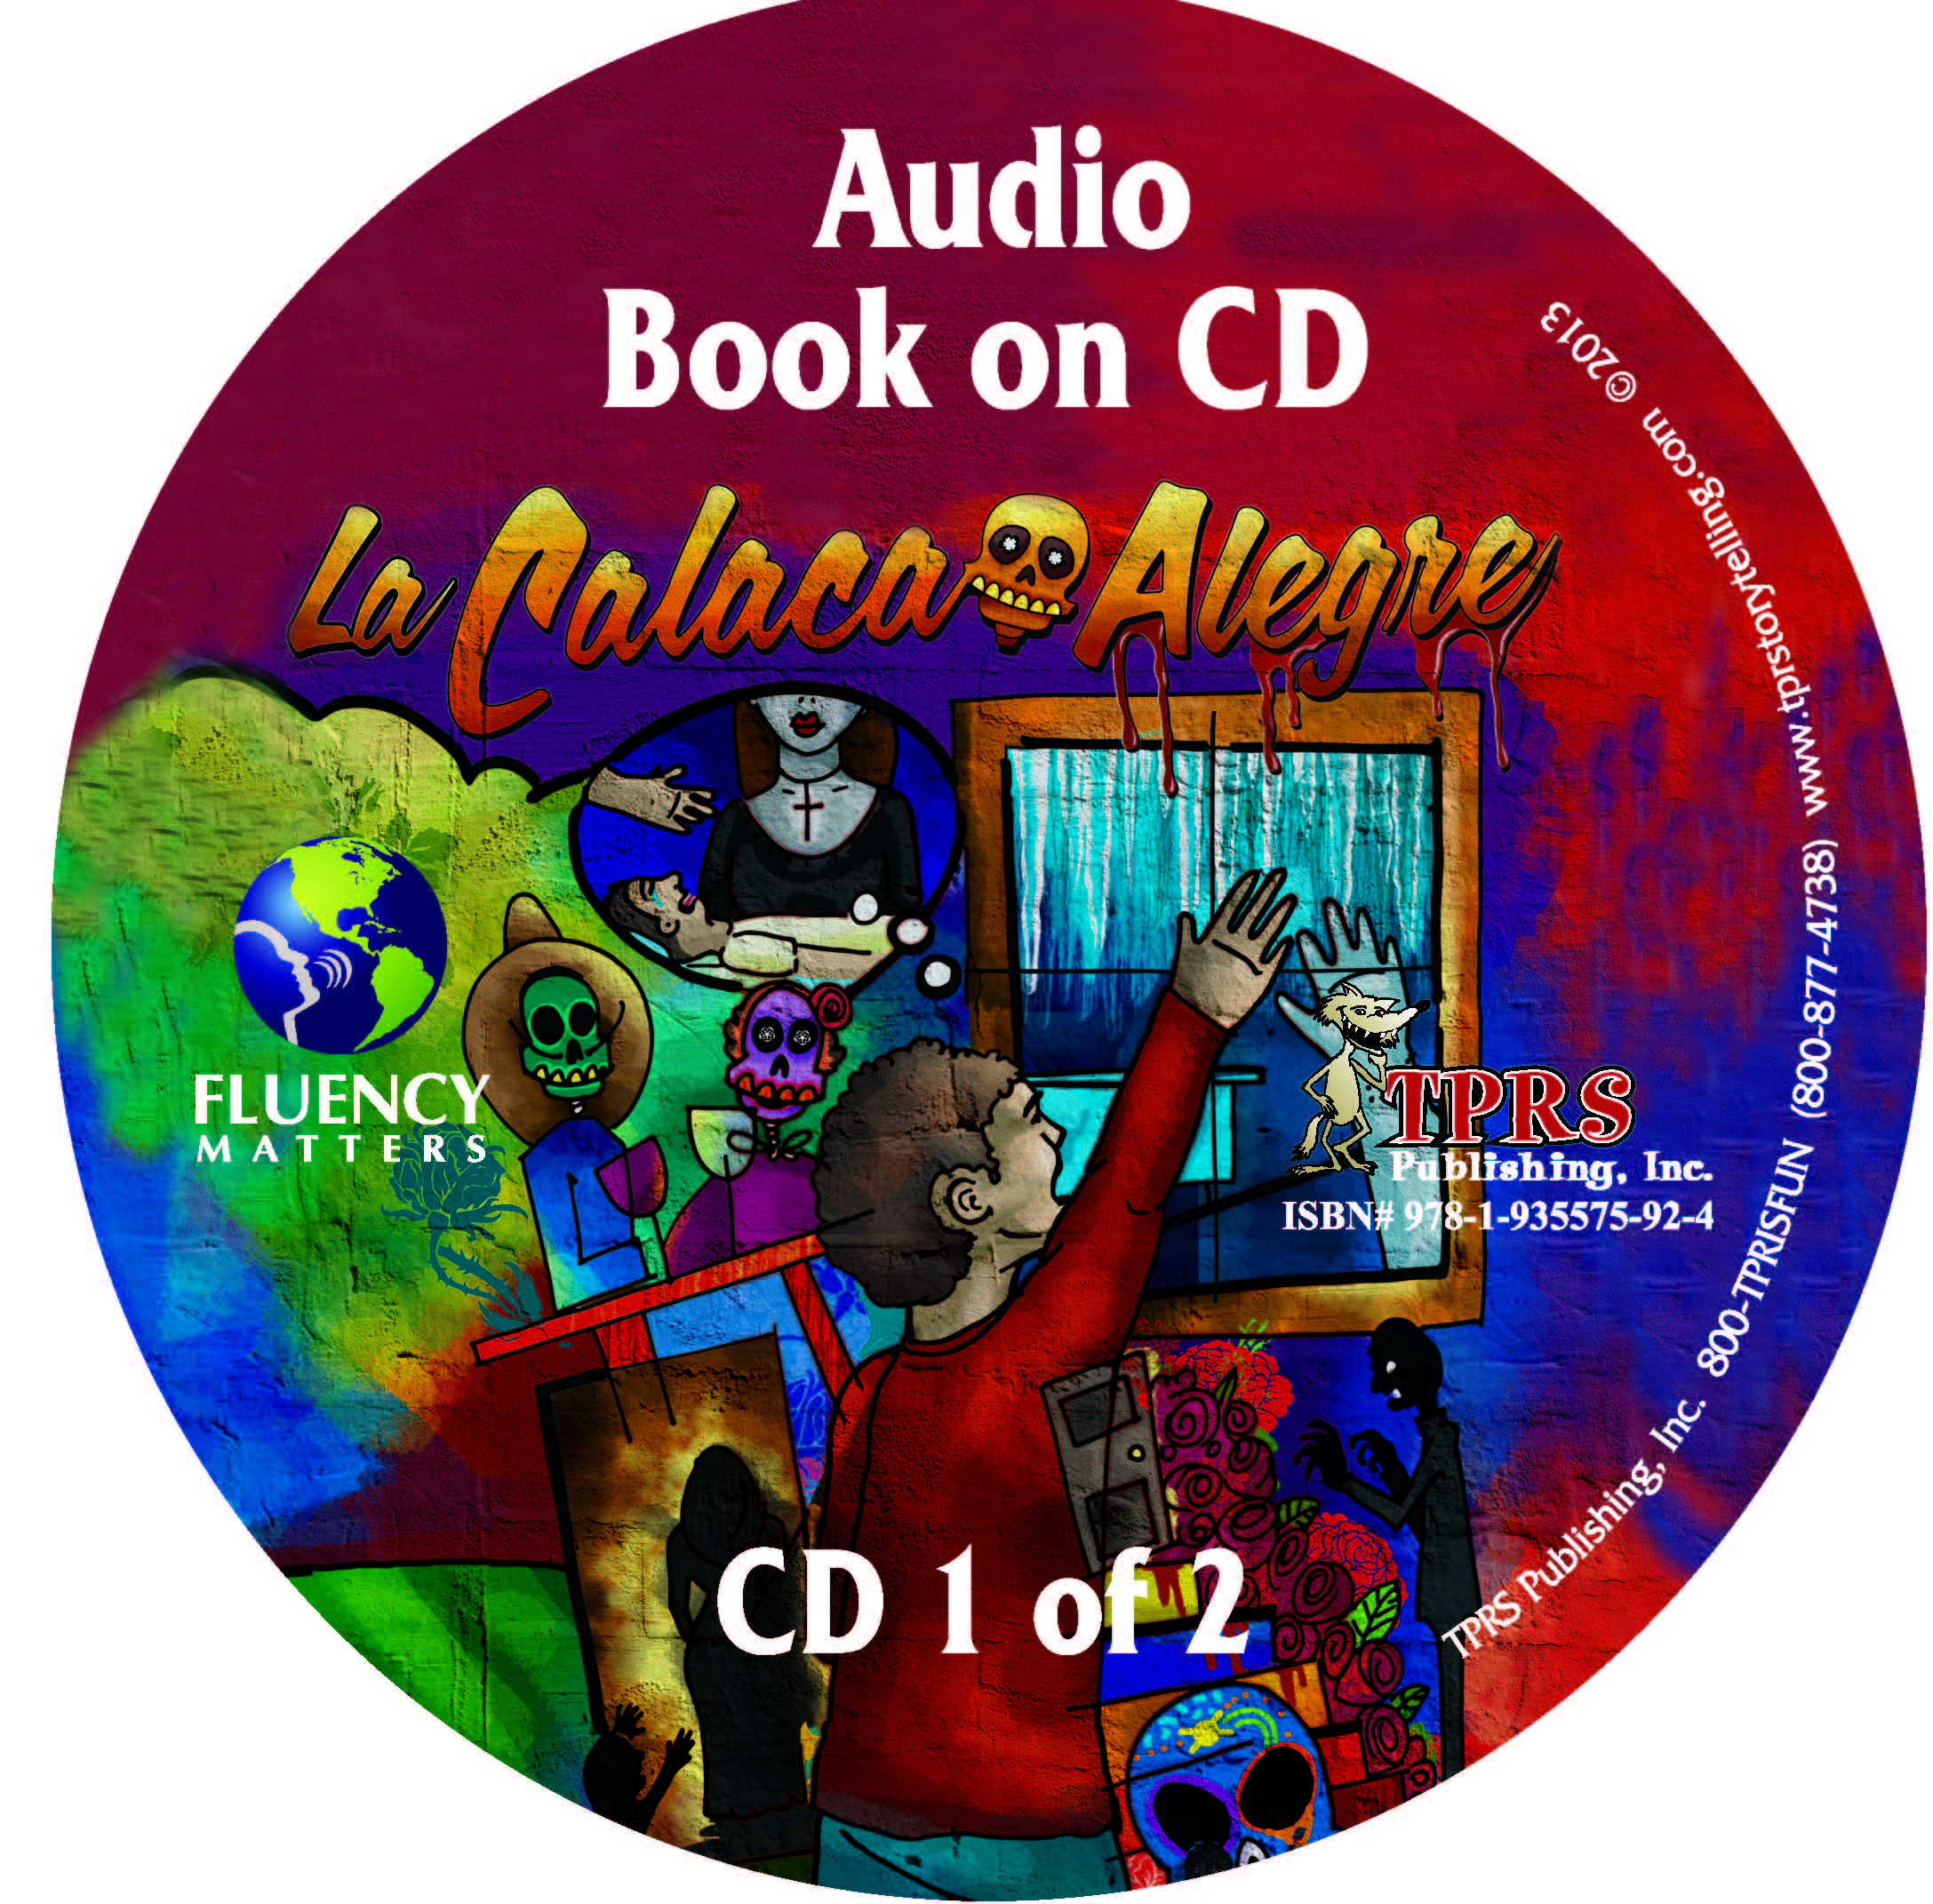 La Calaca Alegre – Audio Book on CD